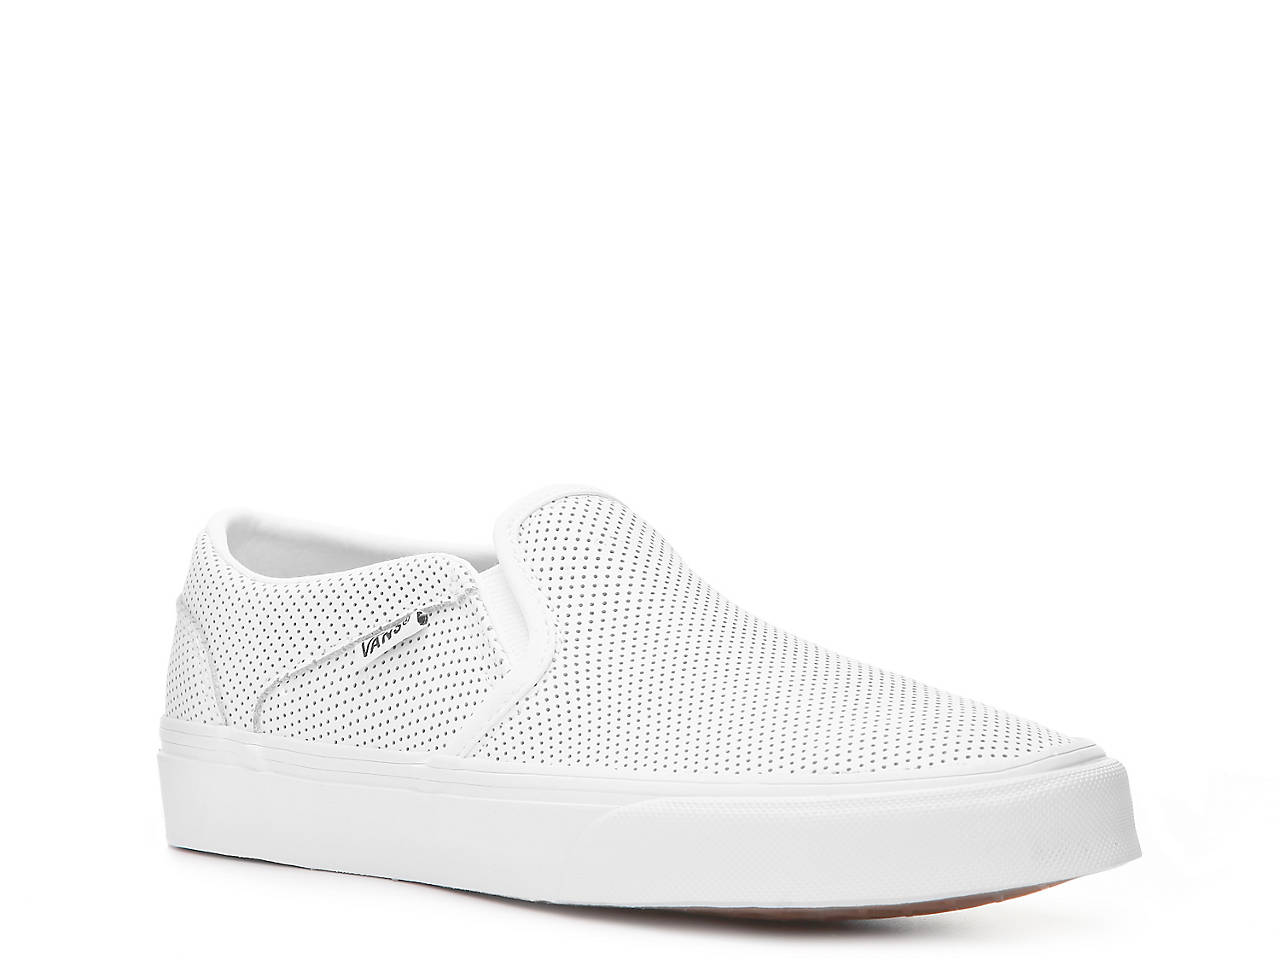 6356ba3ad5393a Vans Asher Perforated Slip-On Sneaker - Women s Women s Shoes